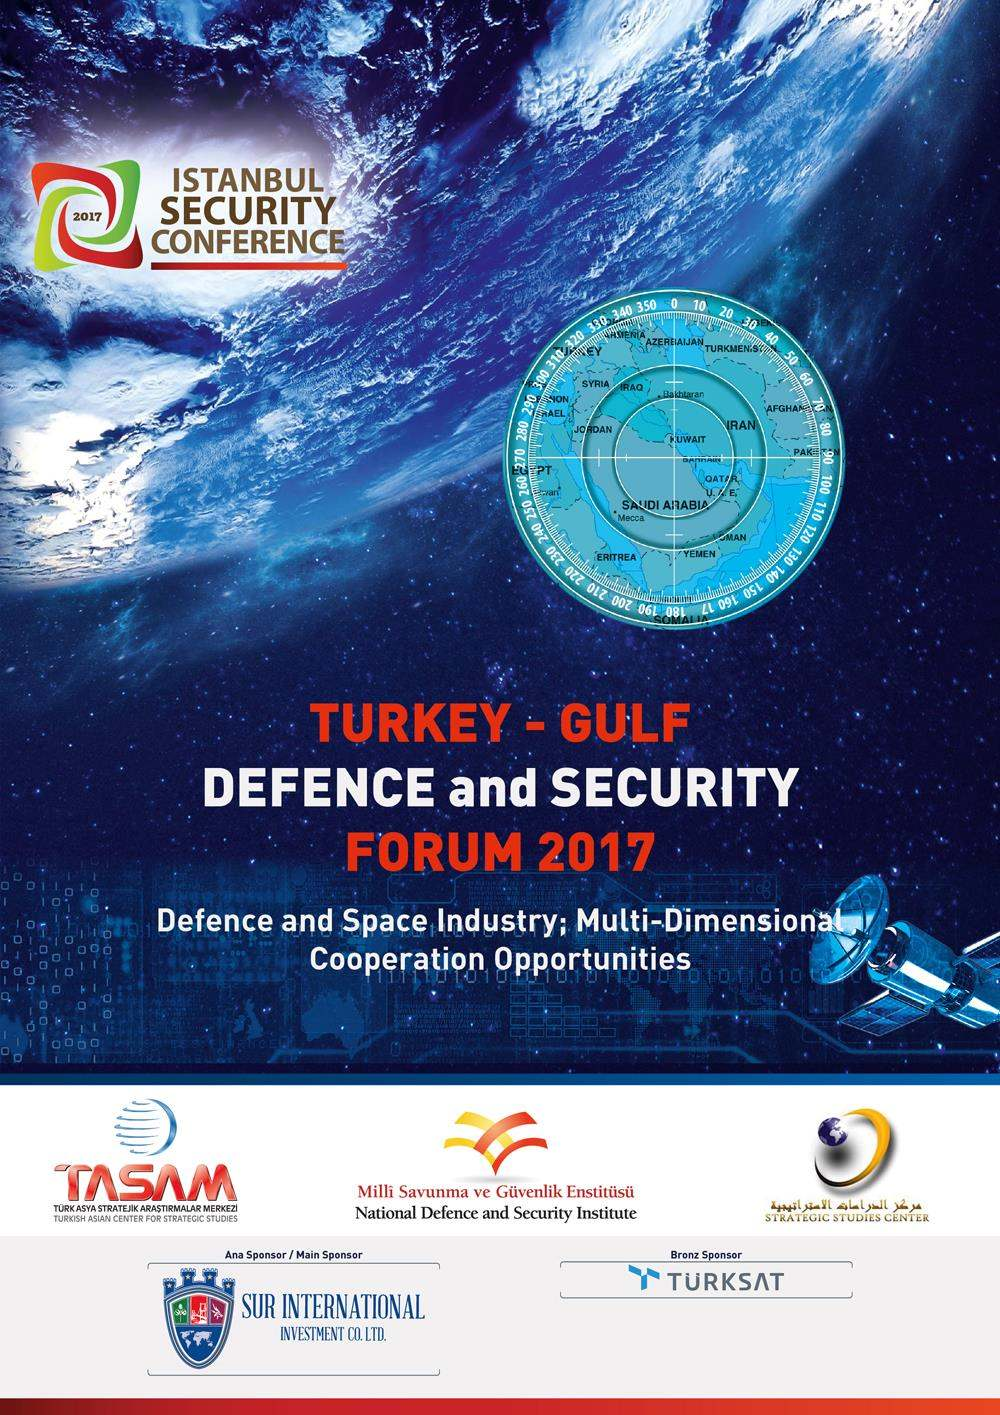 Turkey - Gulf Defence and Security Forum